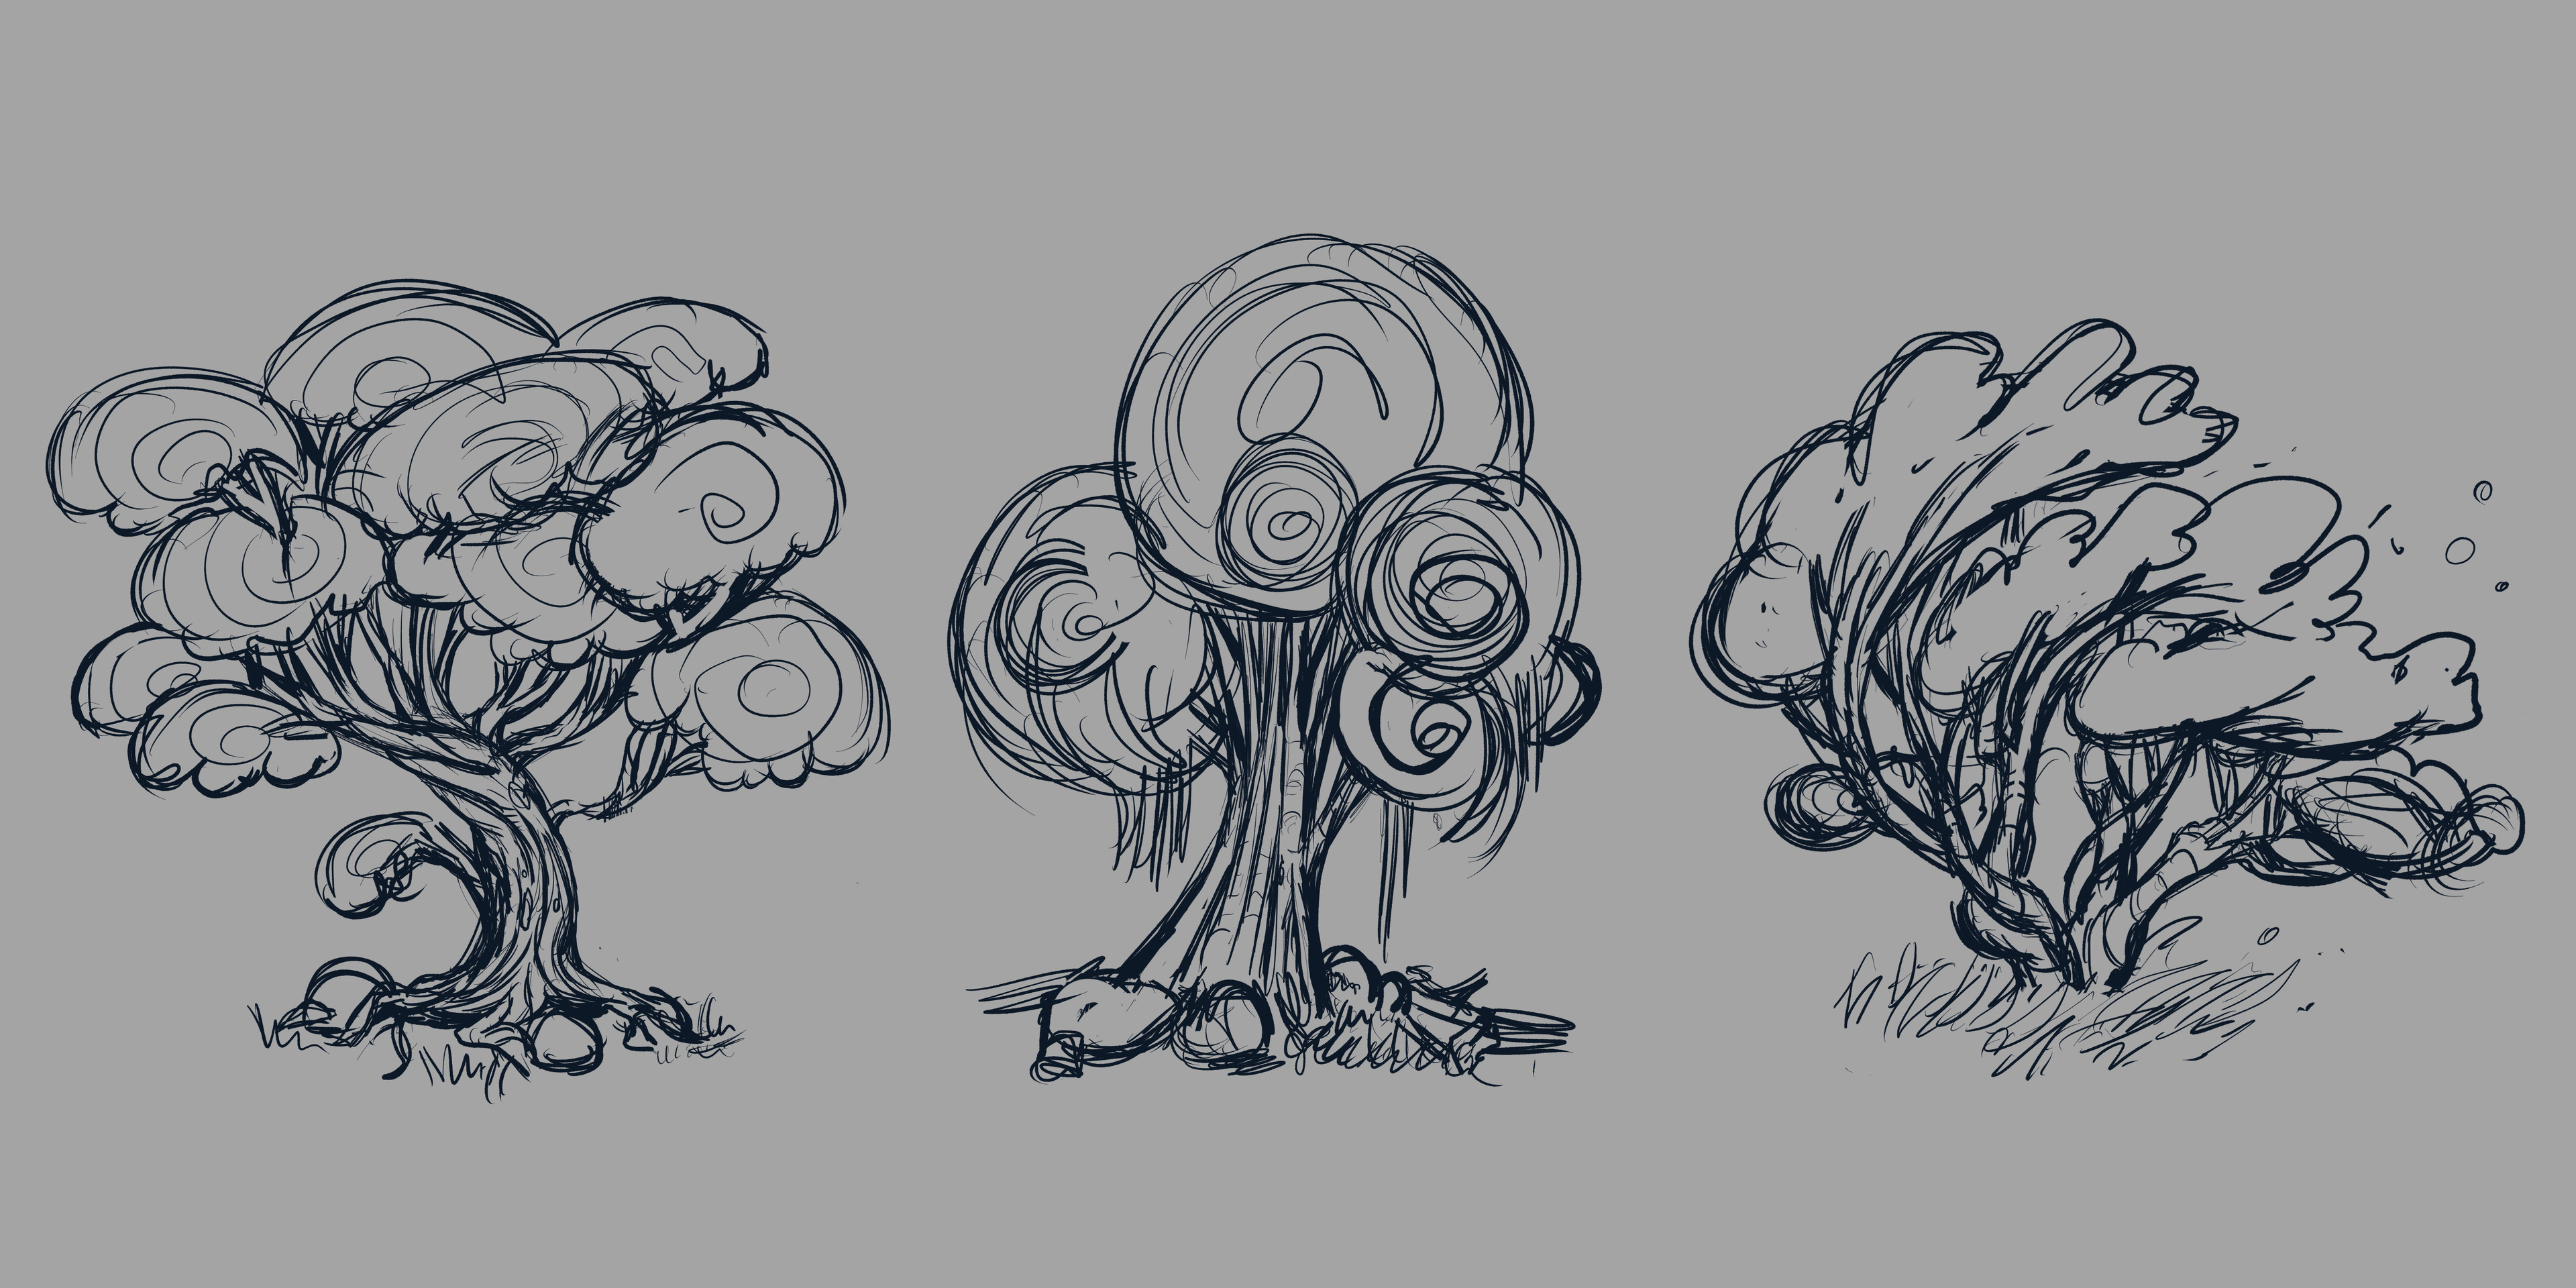 More detailed sketch for trees number 5, 11 and 16